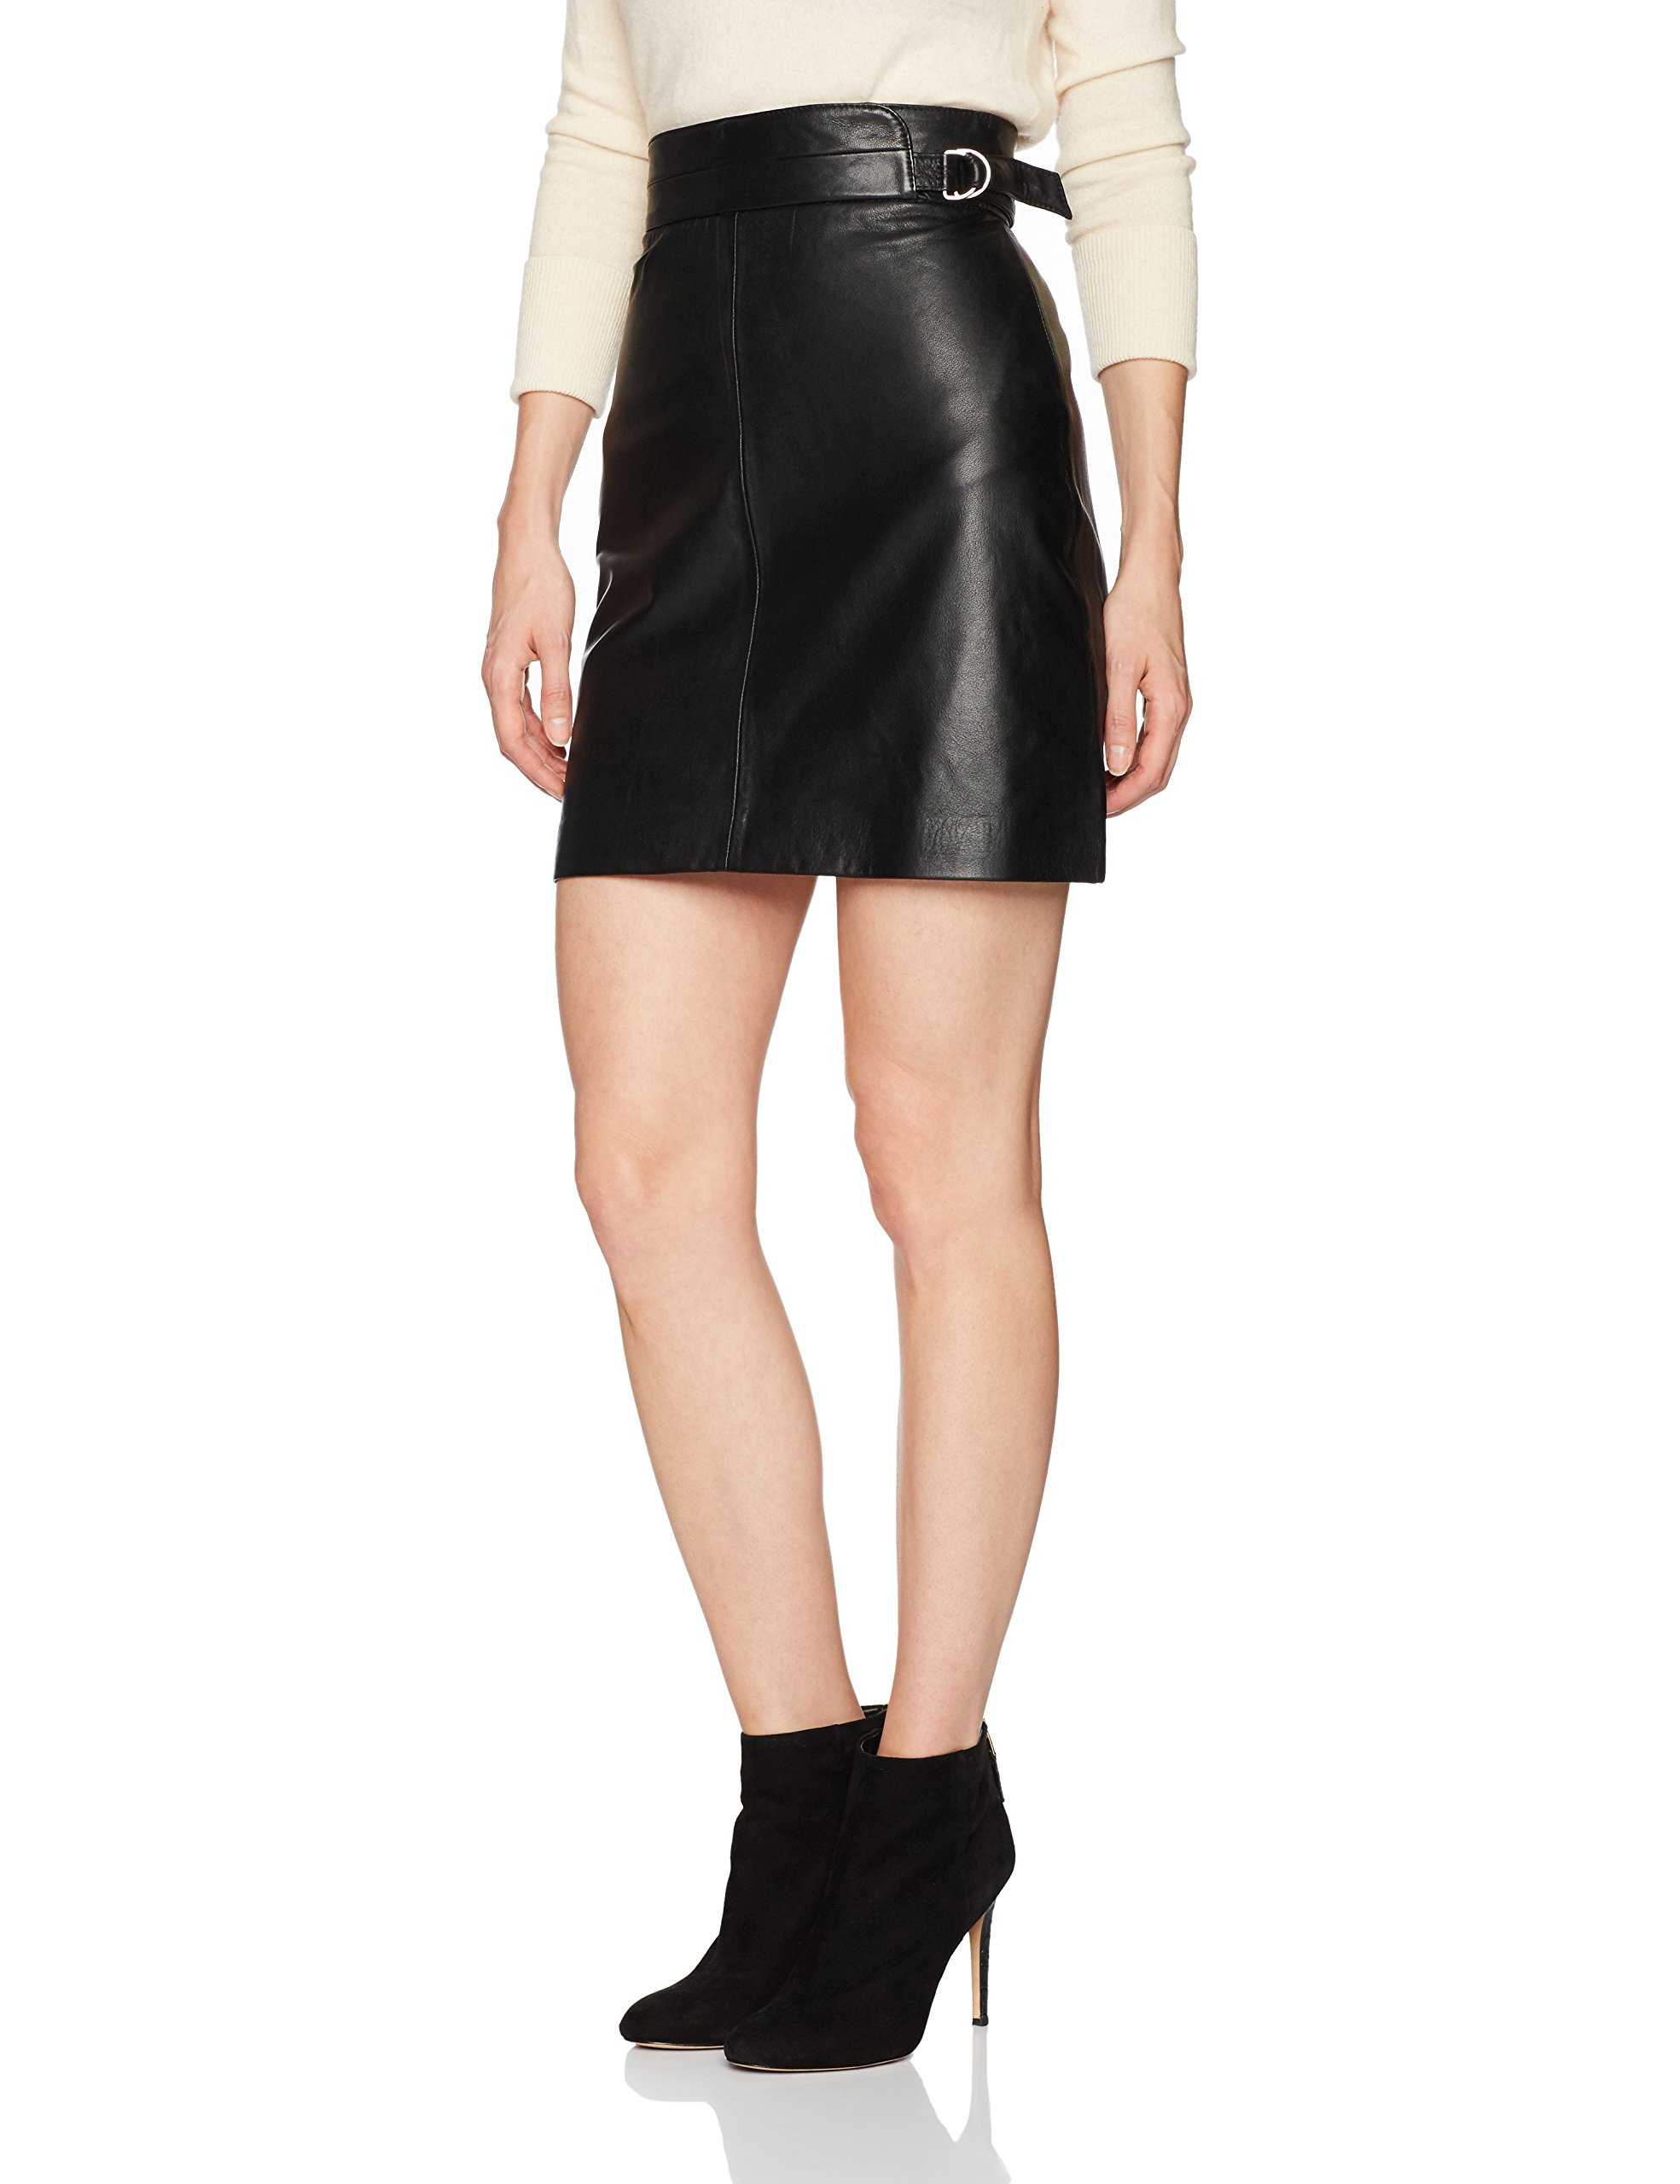 French Connection Women's Goldenburg Leather Skirt, Black, 0